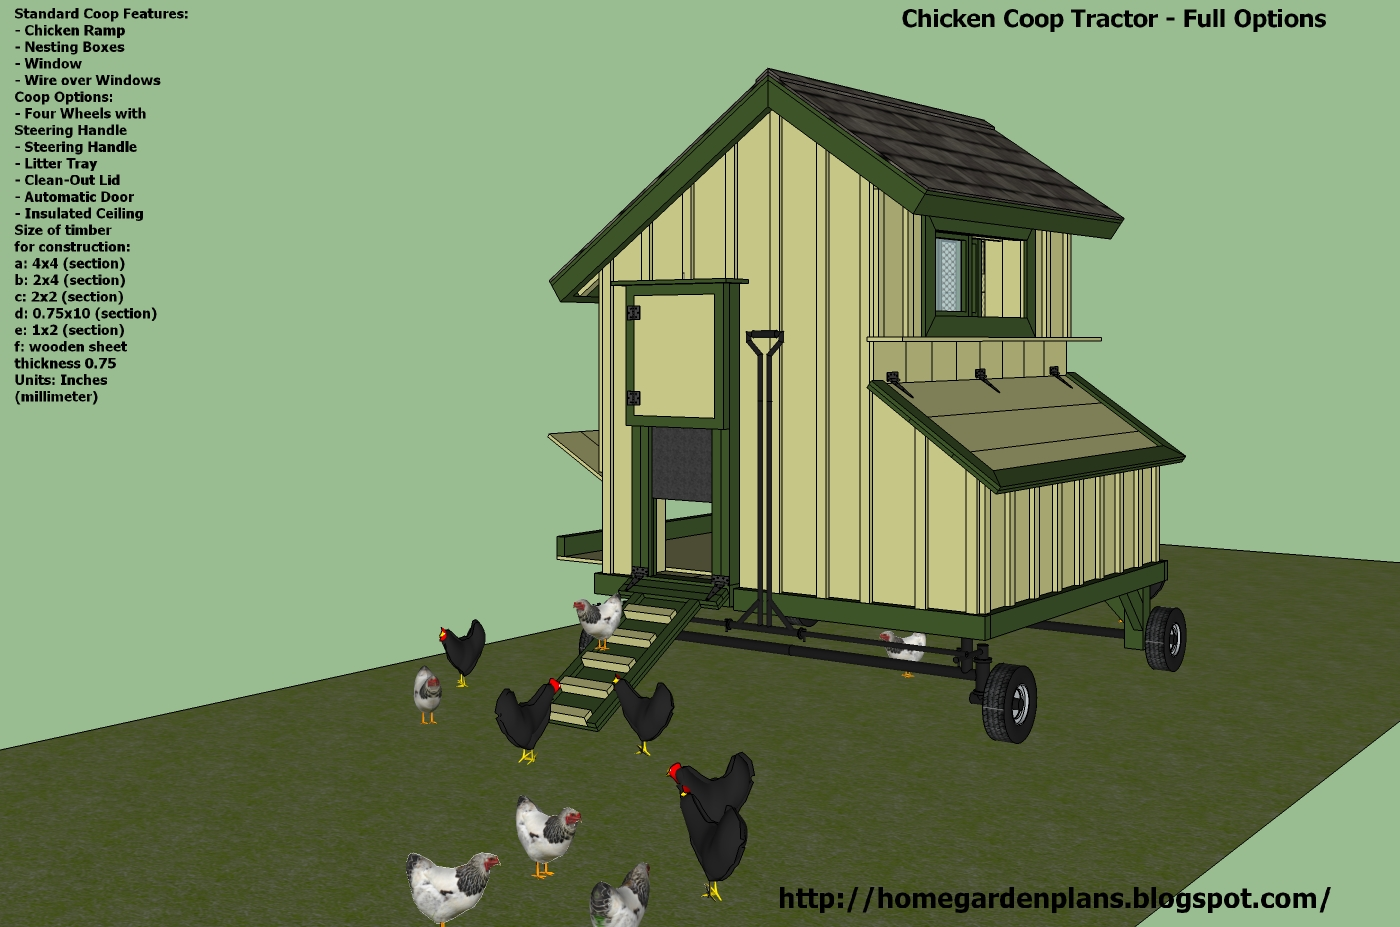 Home garden plans t200 chicken coop tractor plans for Plans chicken coop